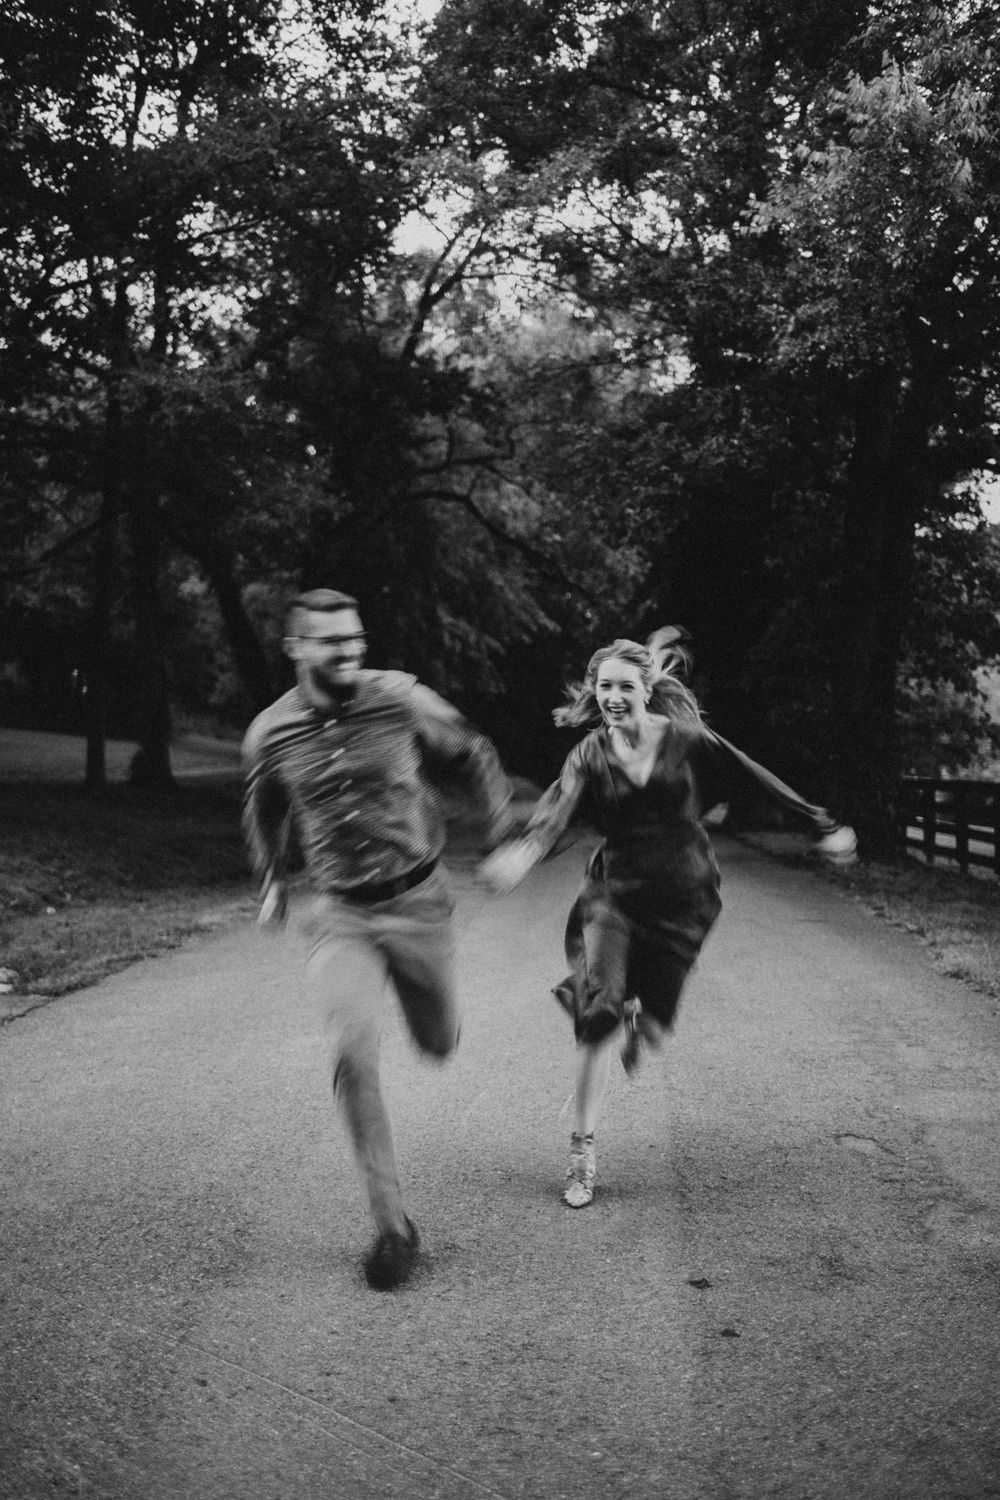 couple running down a road in Nashville Tennessee